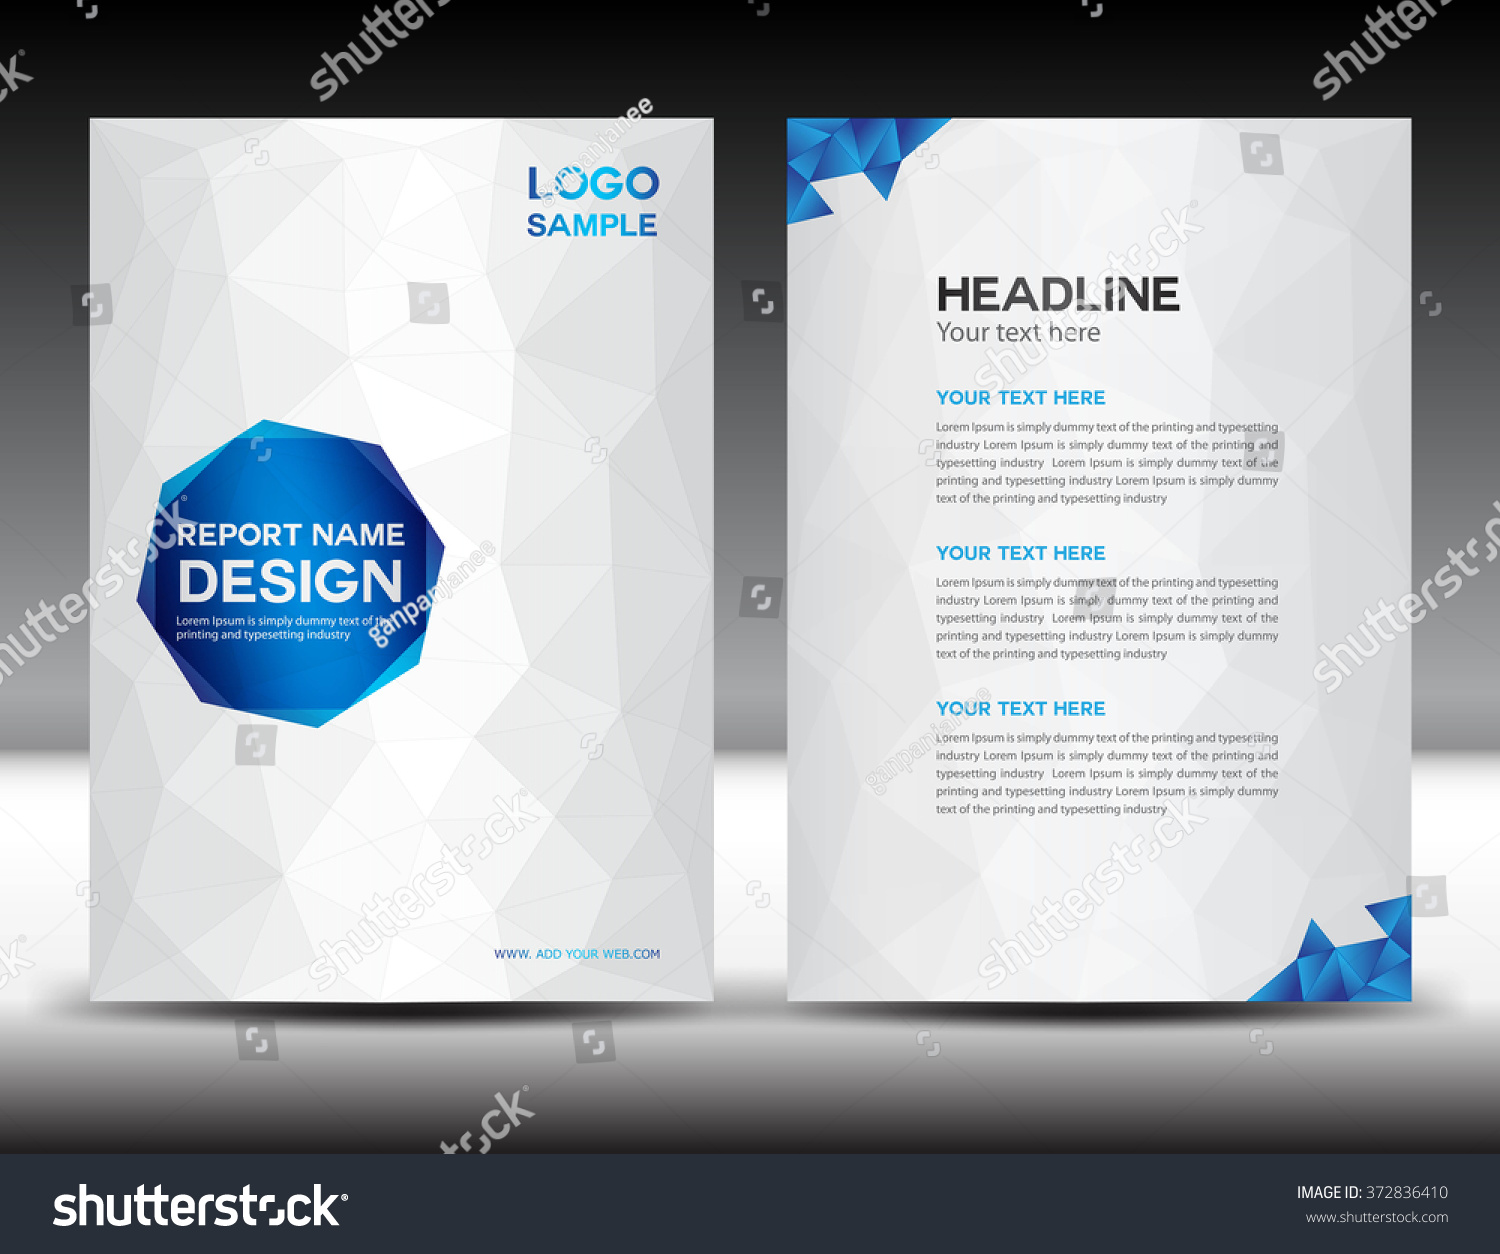 report cover page templates paralegal resume doc700406 annual report templates annual stock vector white annual report template brochure flyer cover design polygon background